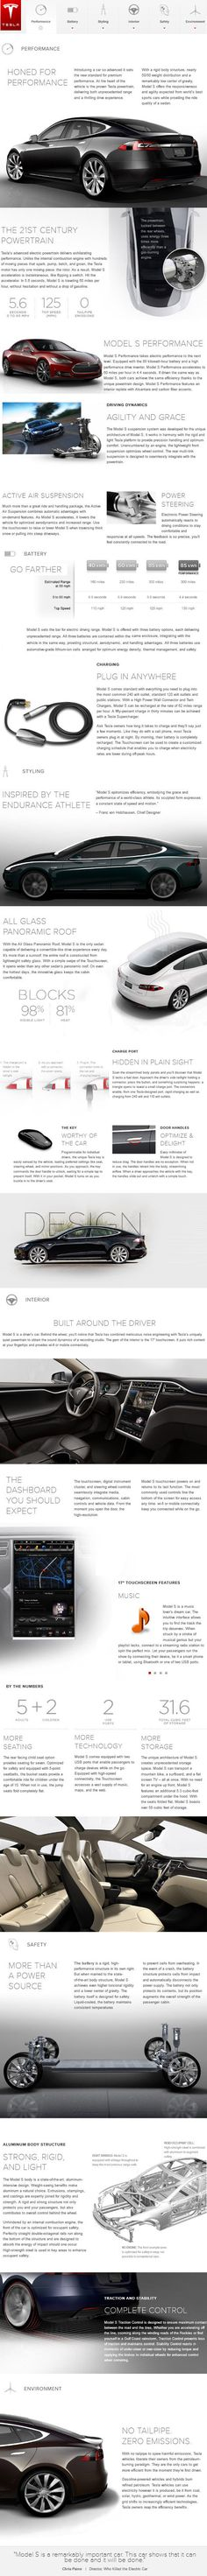 Tesla Model-S Full Electric Car